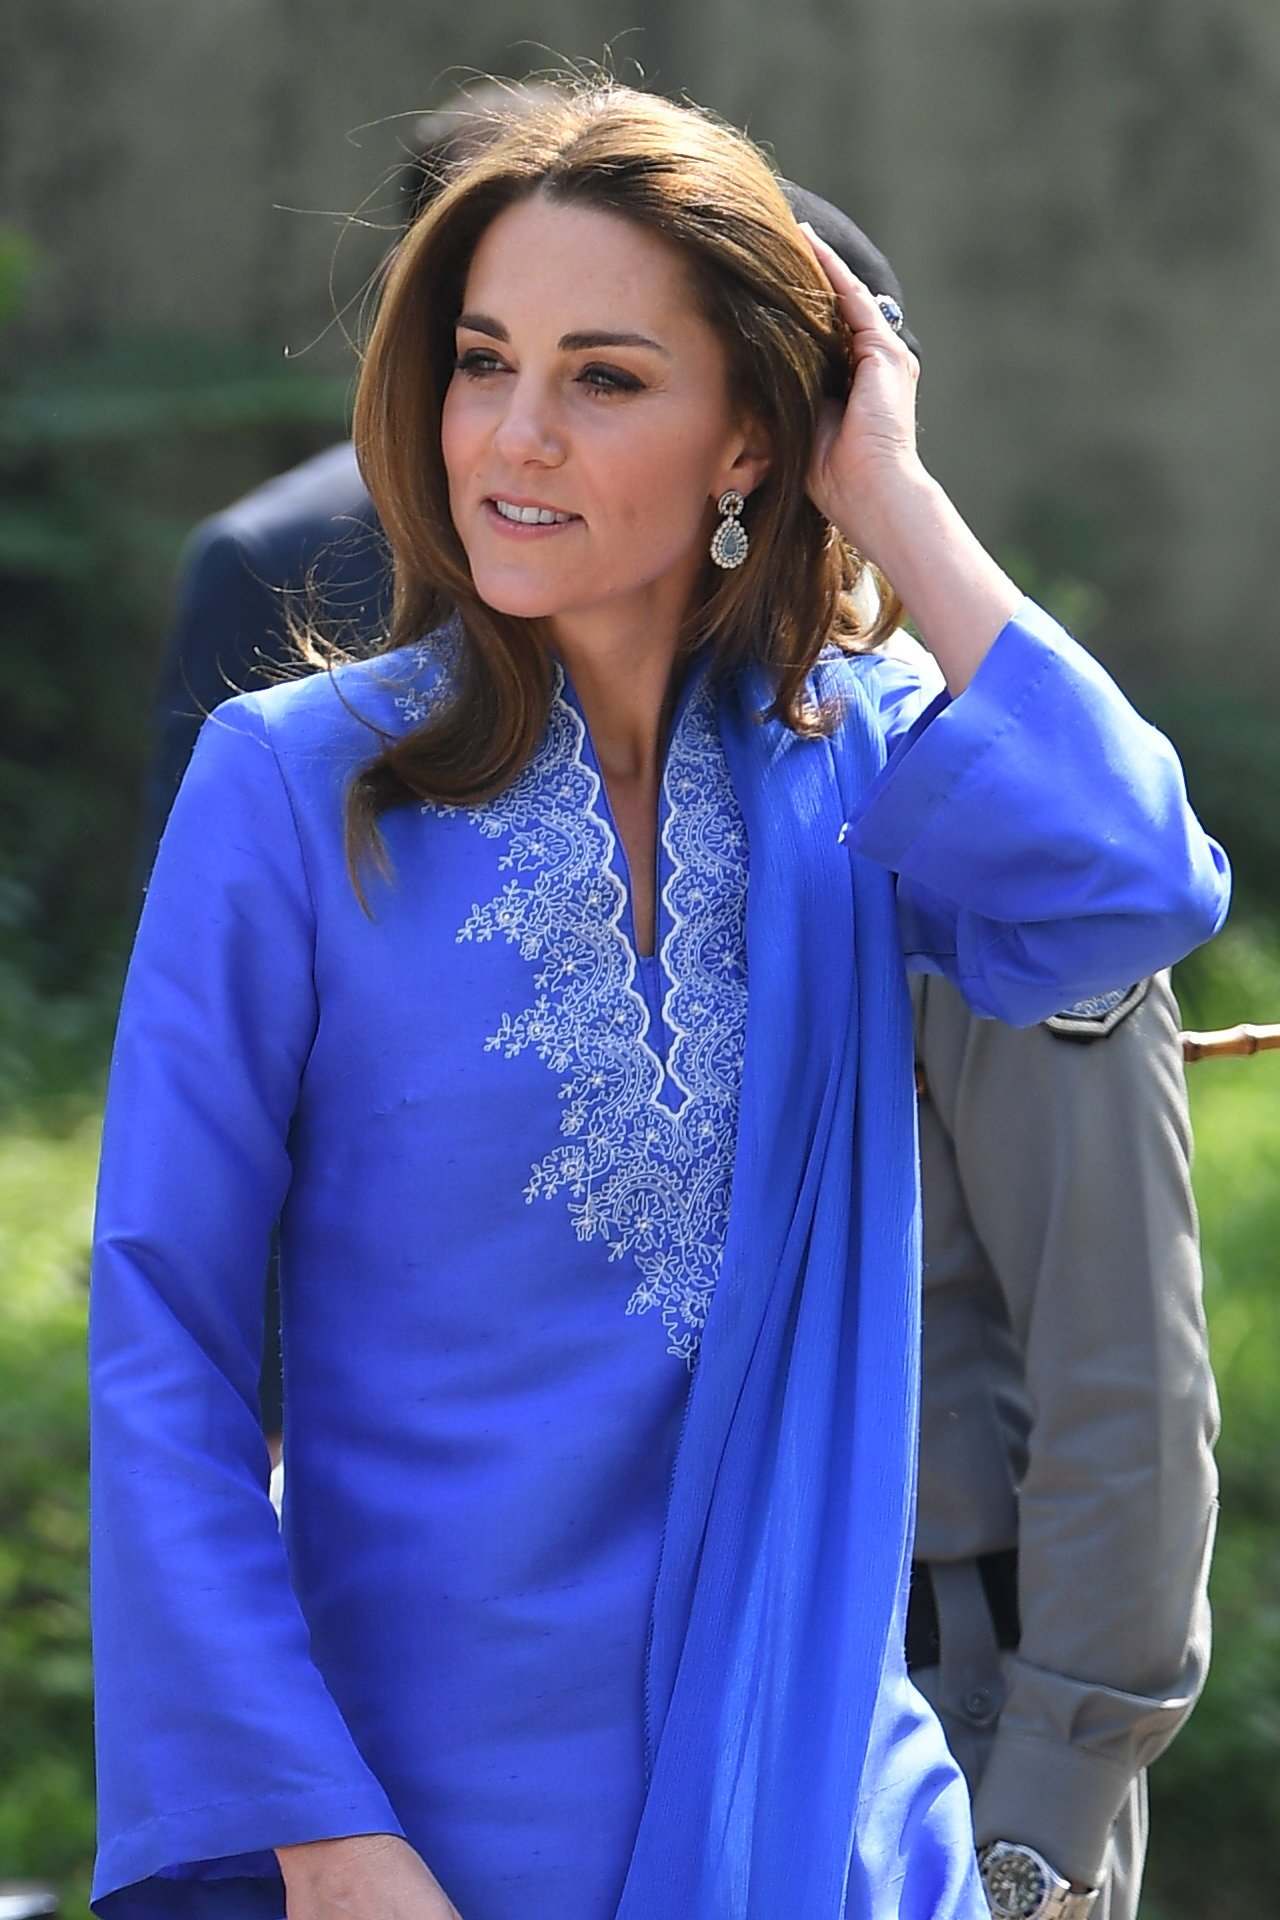 The Duchess of Cambridge wowed in a traditional blue kurta